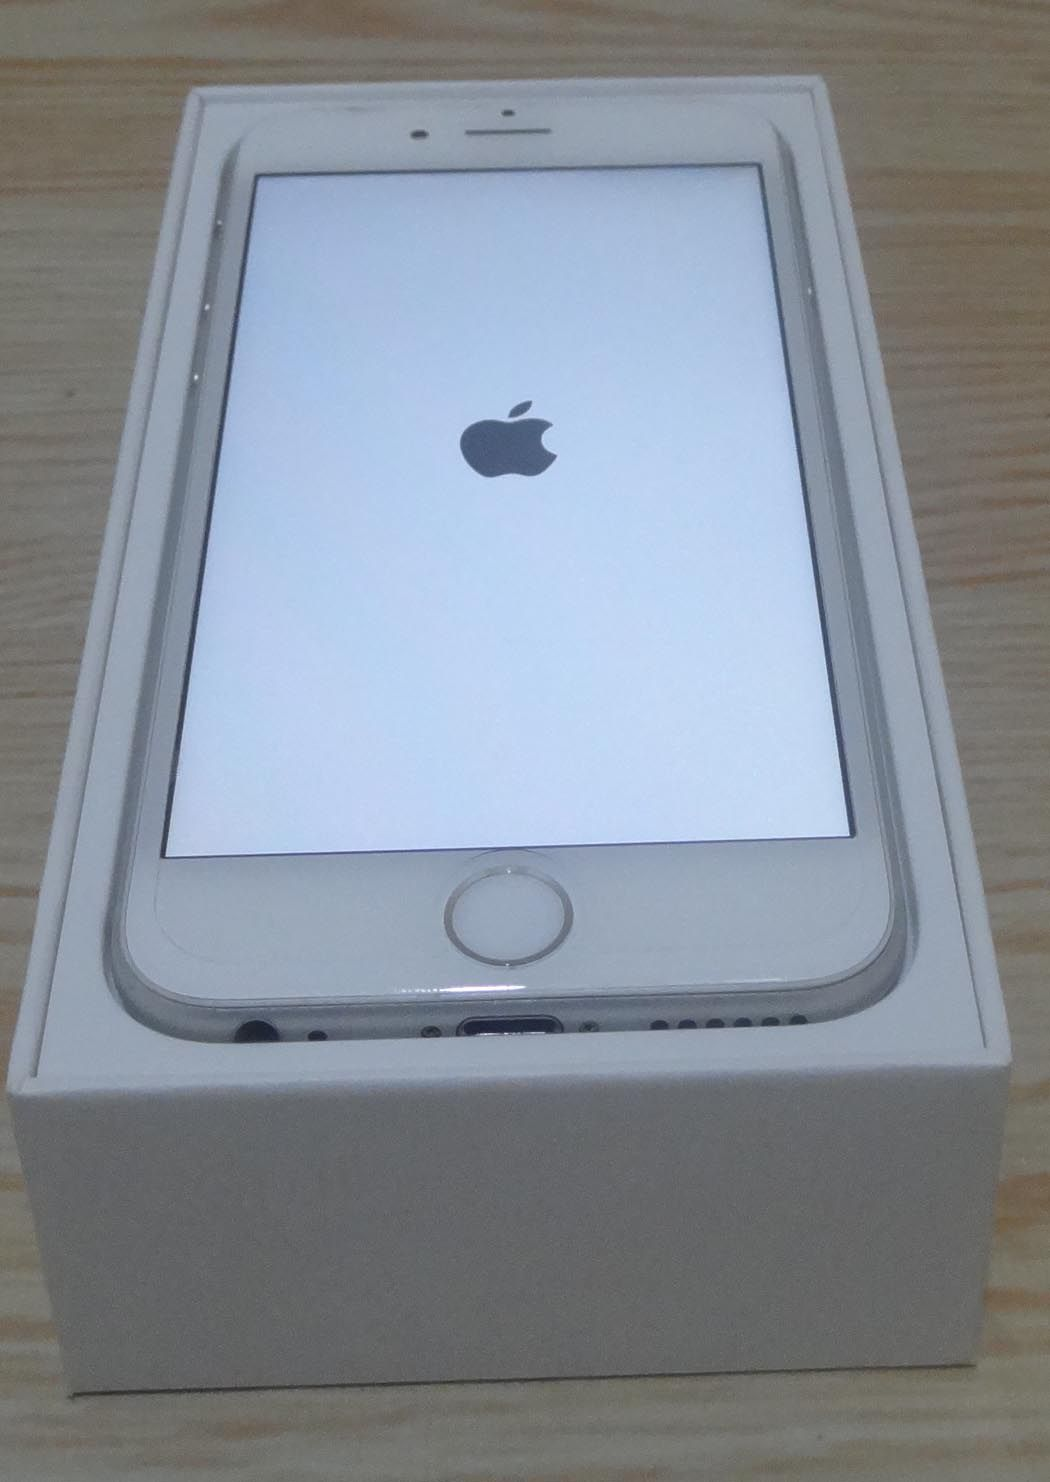 Iphone 6 MG482J/A 16GB - Silver